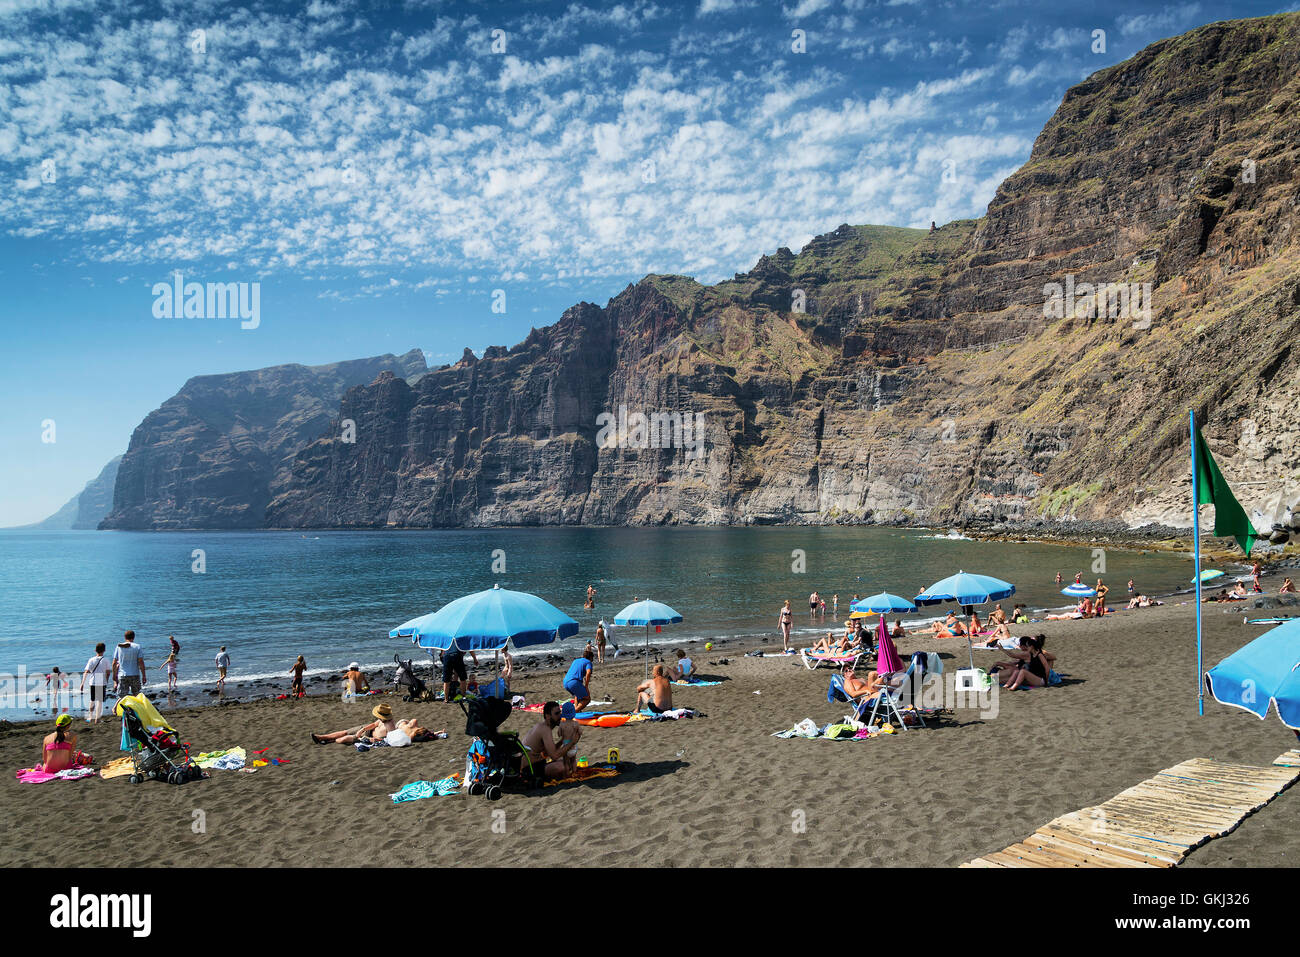 tourists at los gigantes cliffs volcanic black sand beach natural landmark in south tenerife island spain - Stock Image